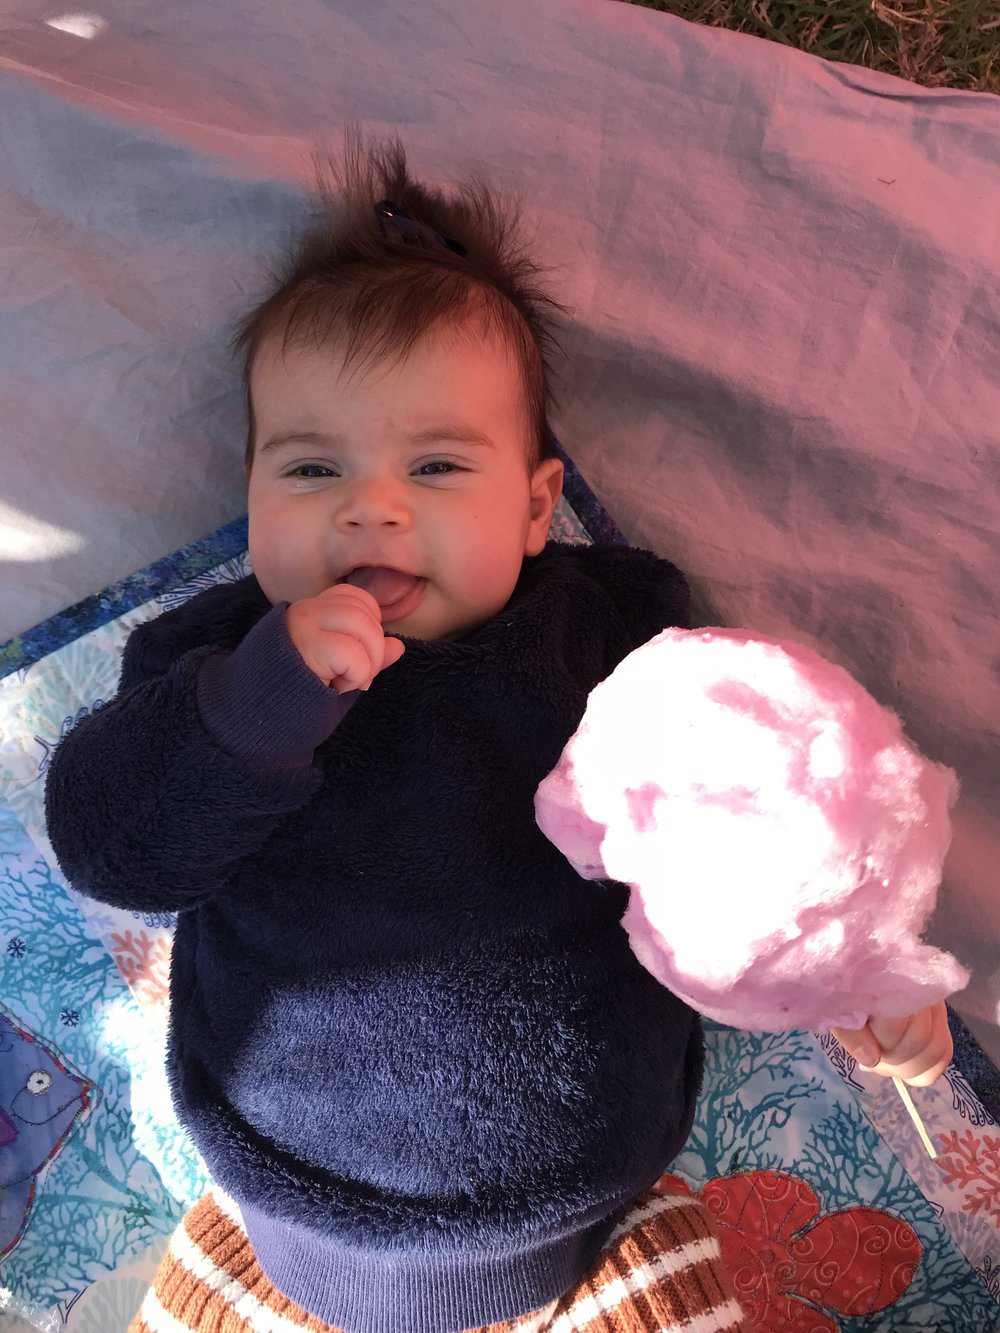 baby eating candy floss.jpg